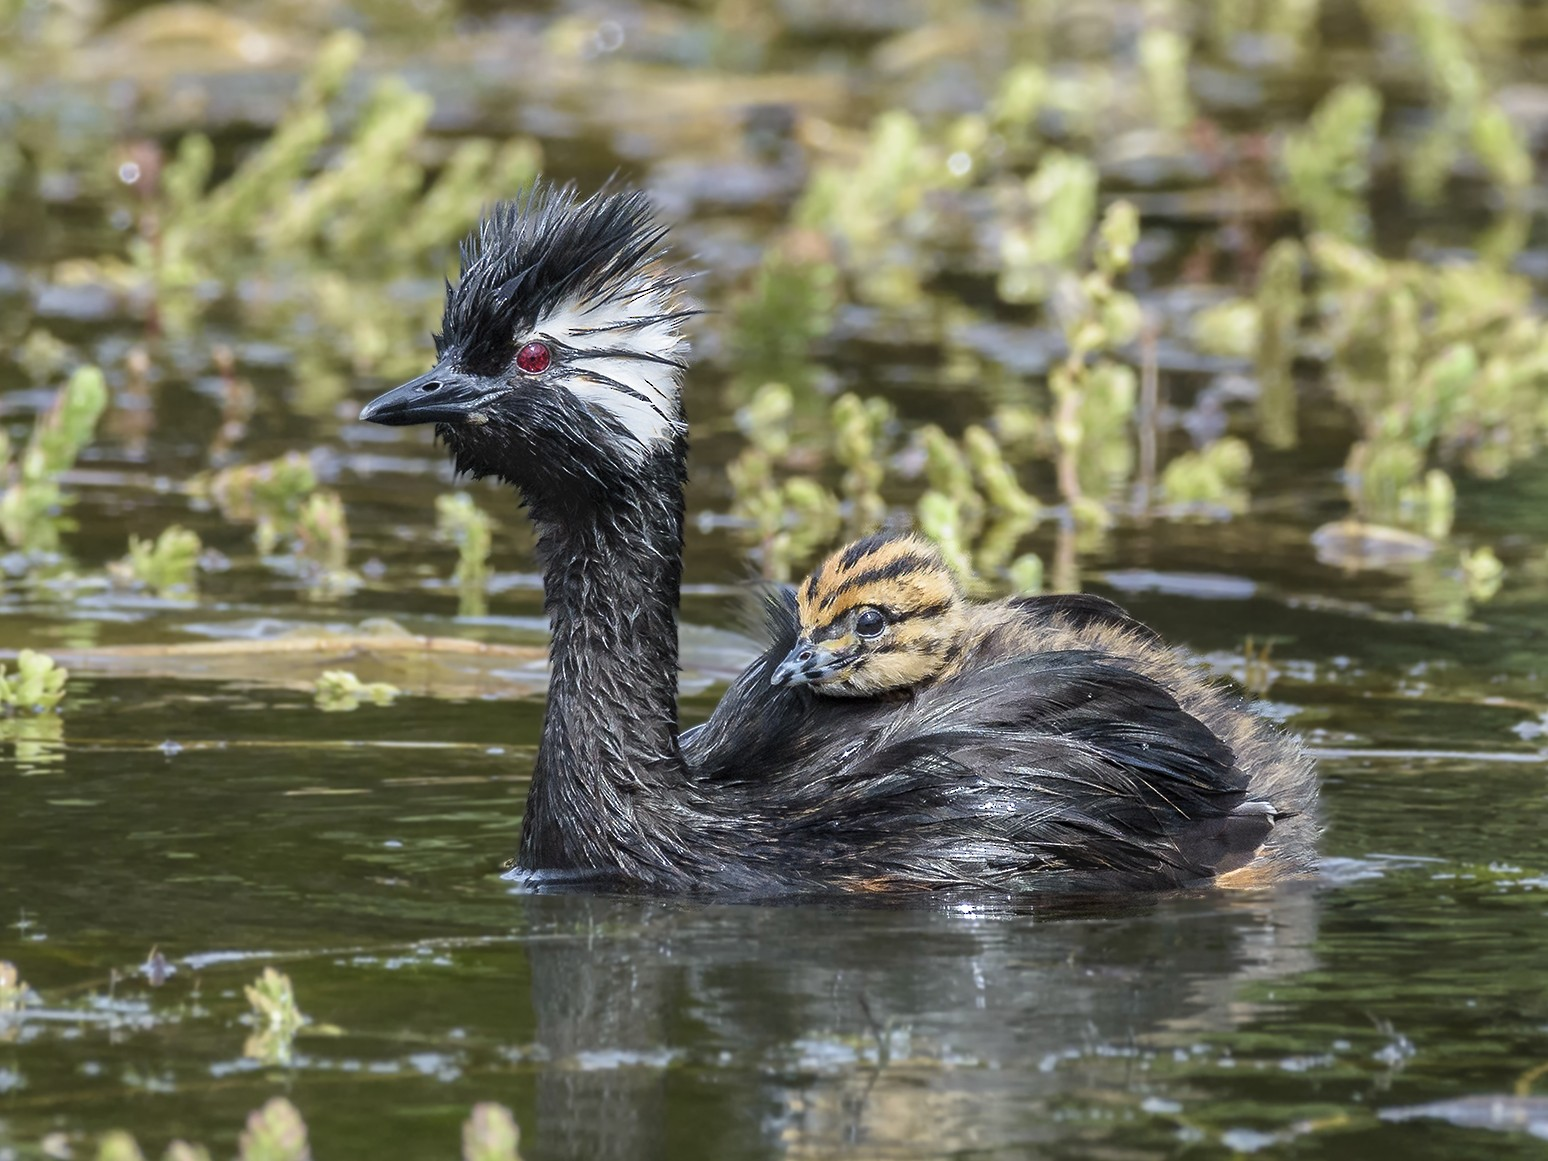 White-tufted Grebe - VERONICA ARAYA GARCIA